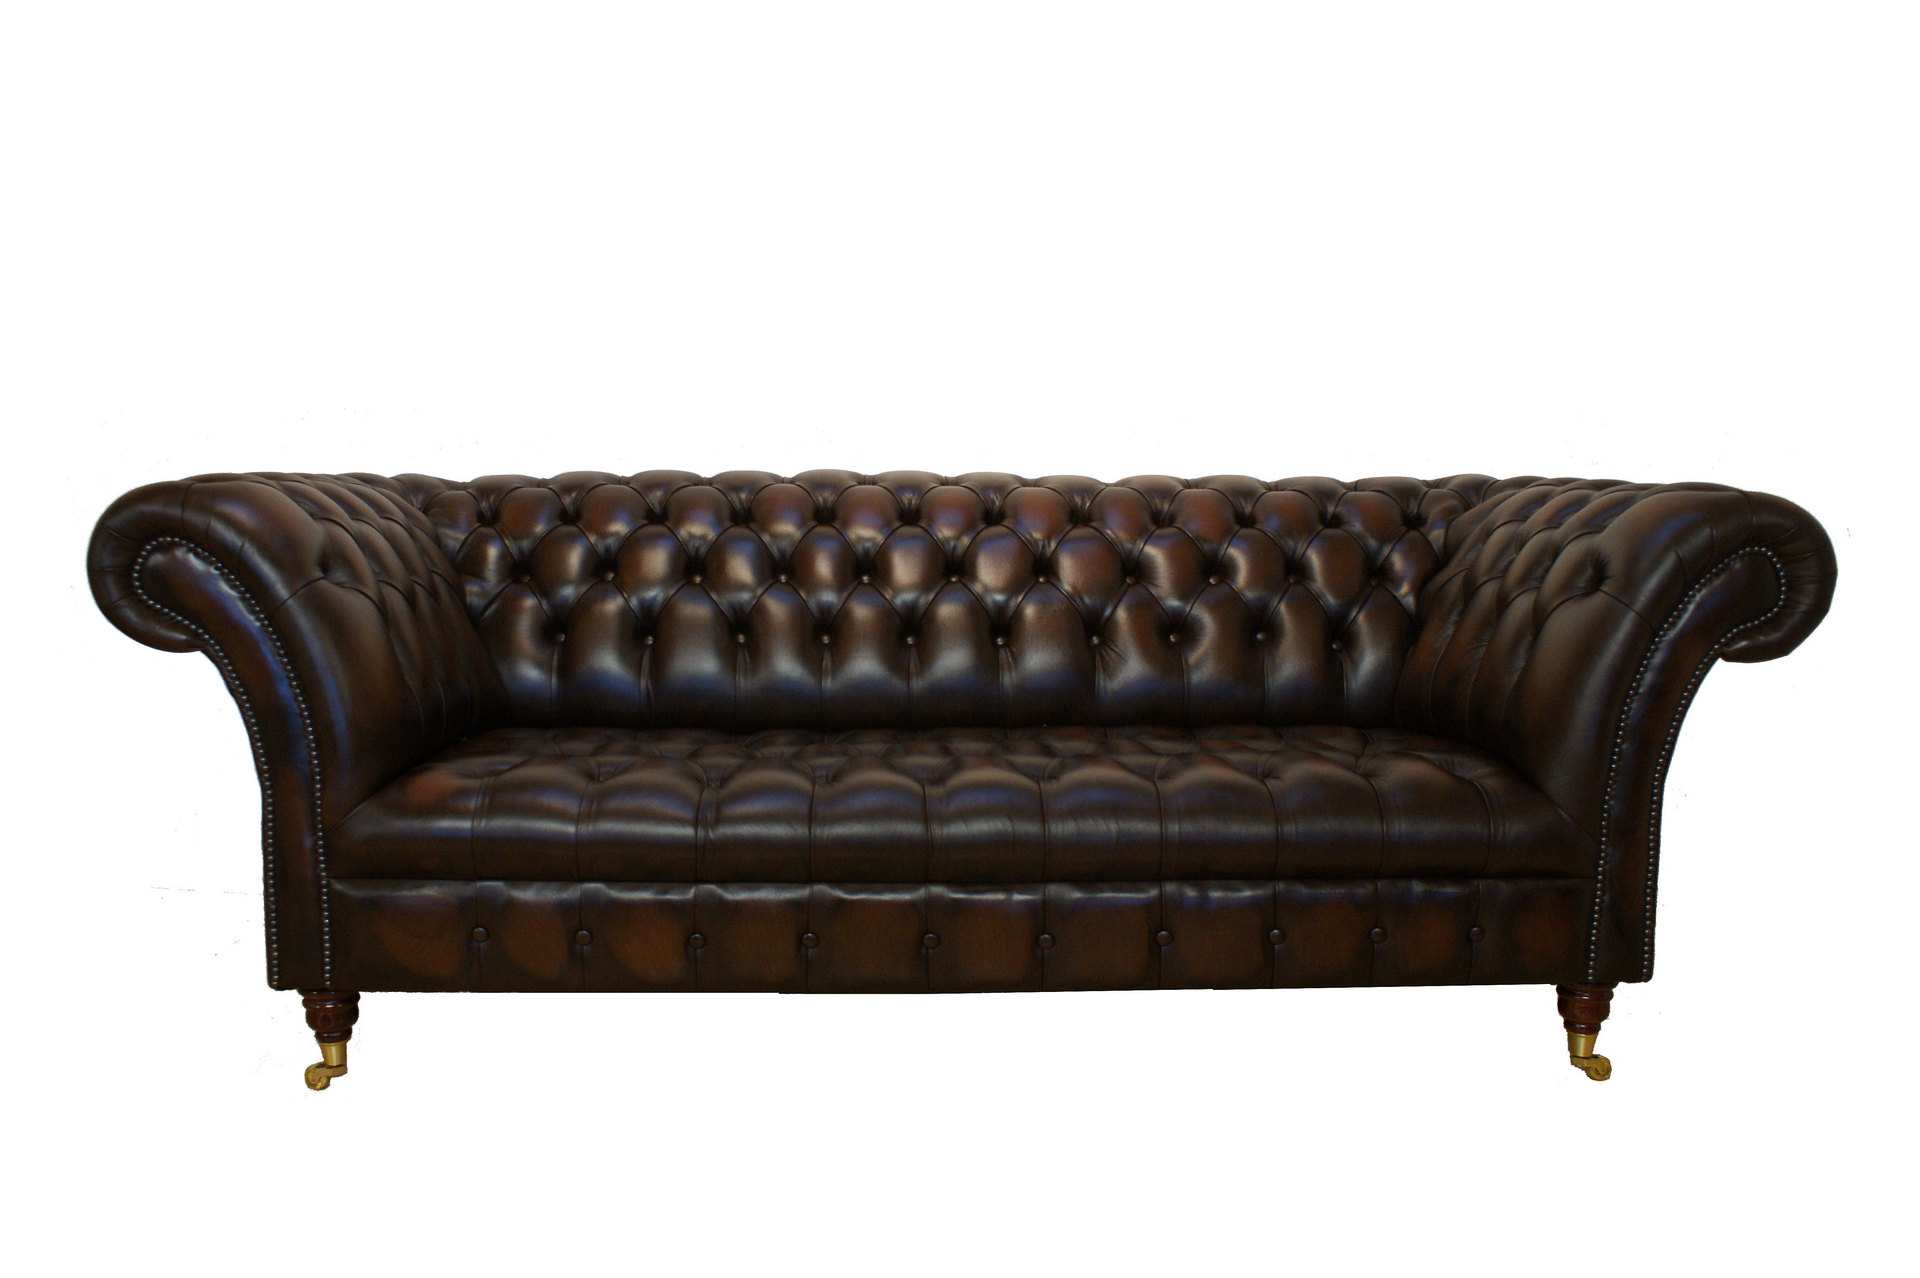 How to a cheap Chesterfield Sofa